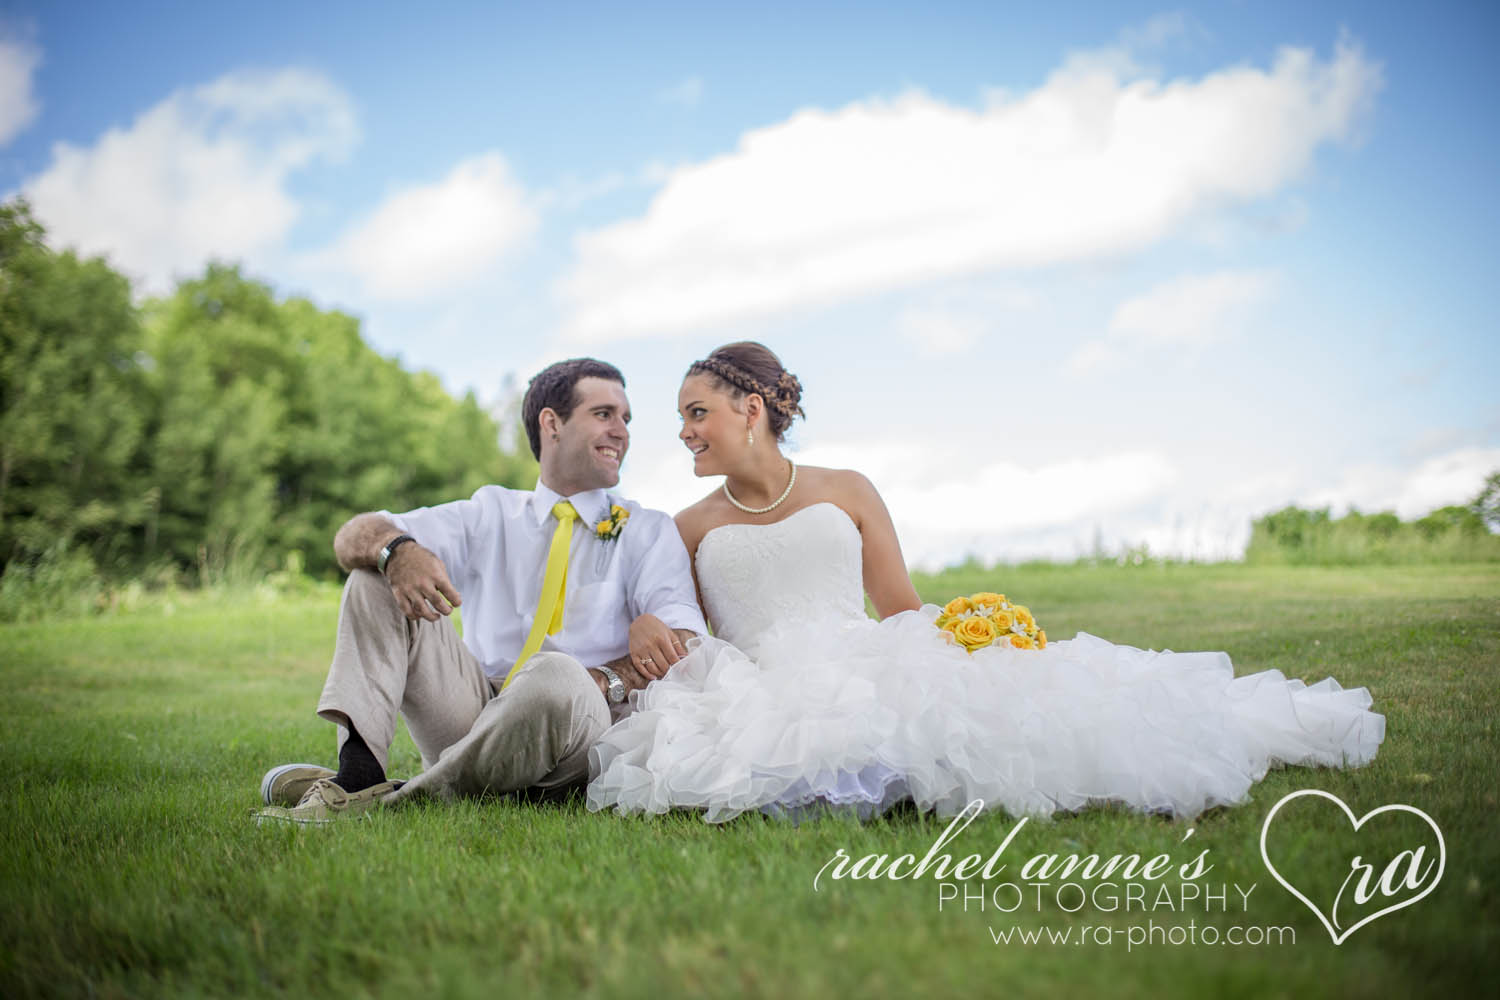 TKS-DUBOIS PA WEDDING-25.jpg